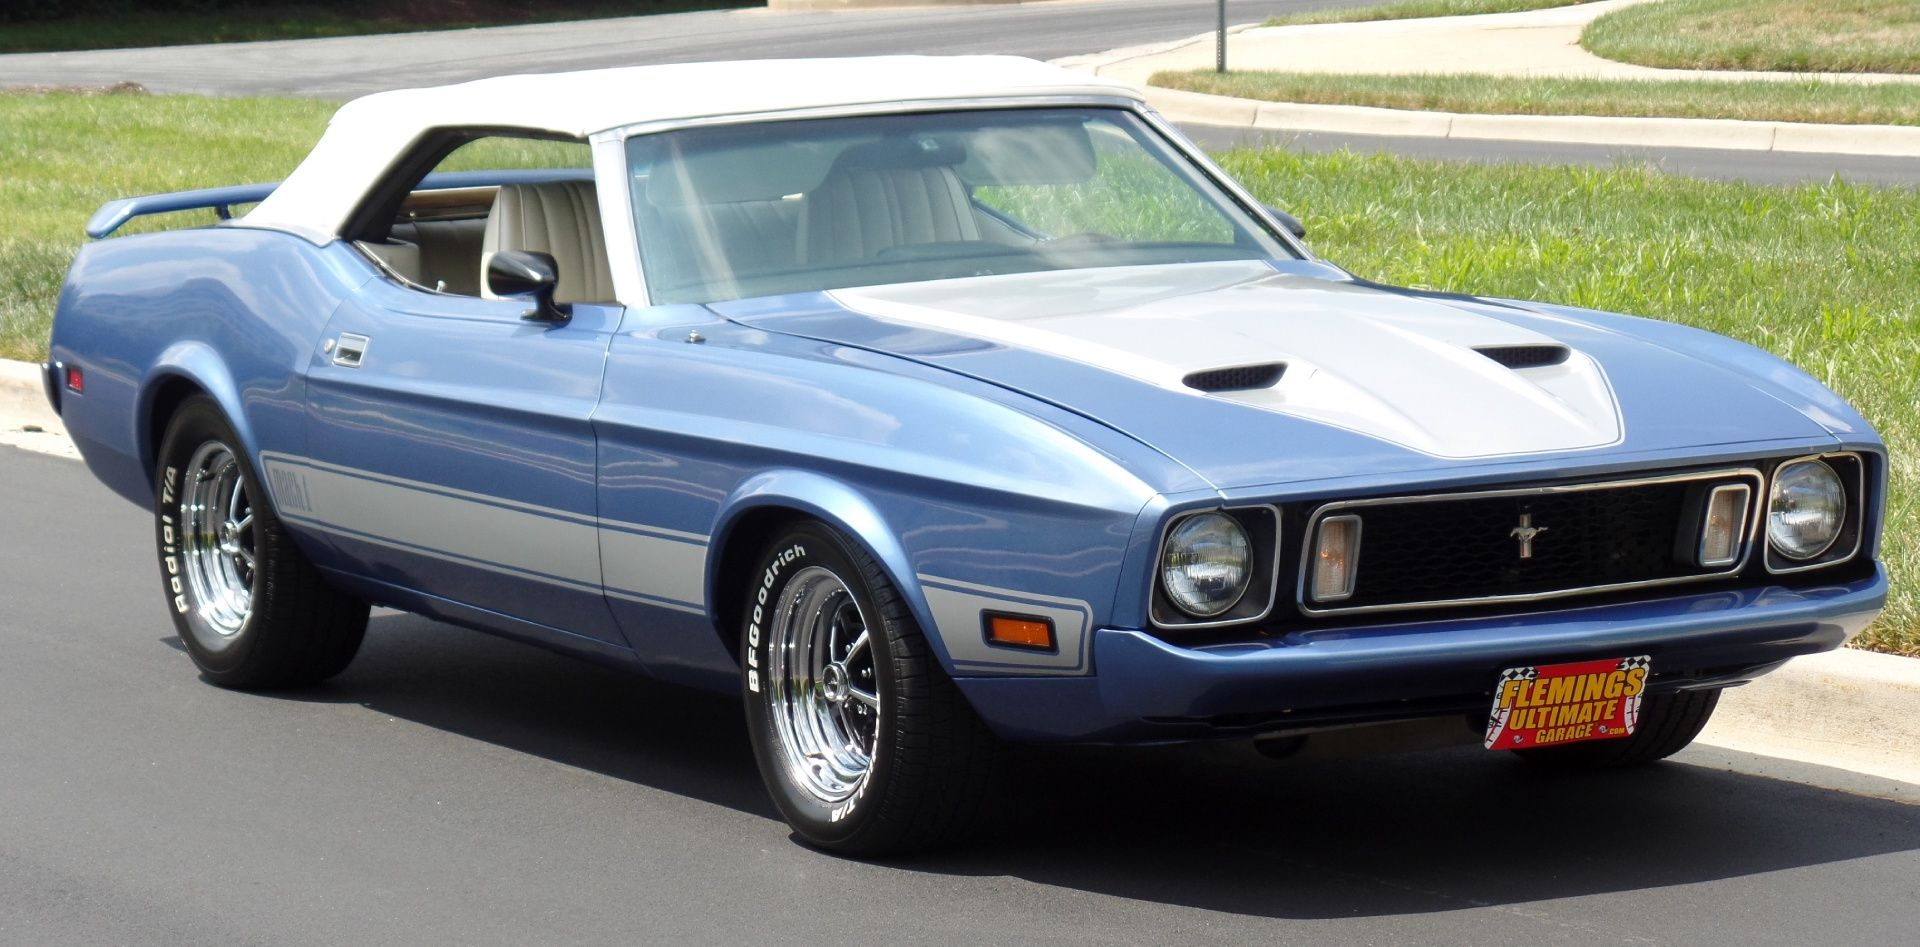 1973 Ford Mustang Mach 1 - Classic cars, Muscle Cars, Exotic cars ...